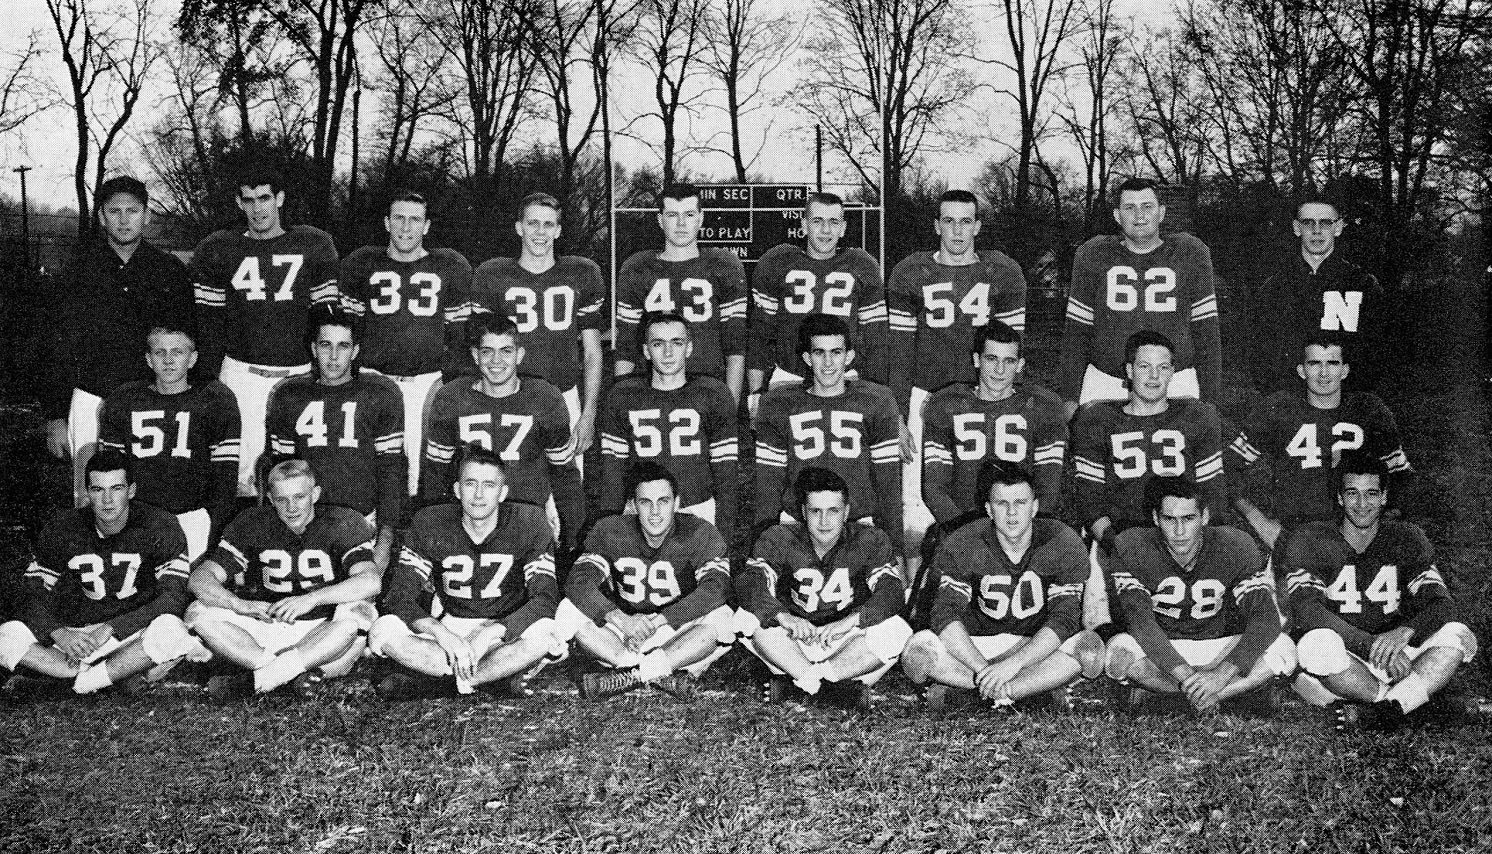 Football player in team photo